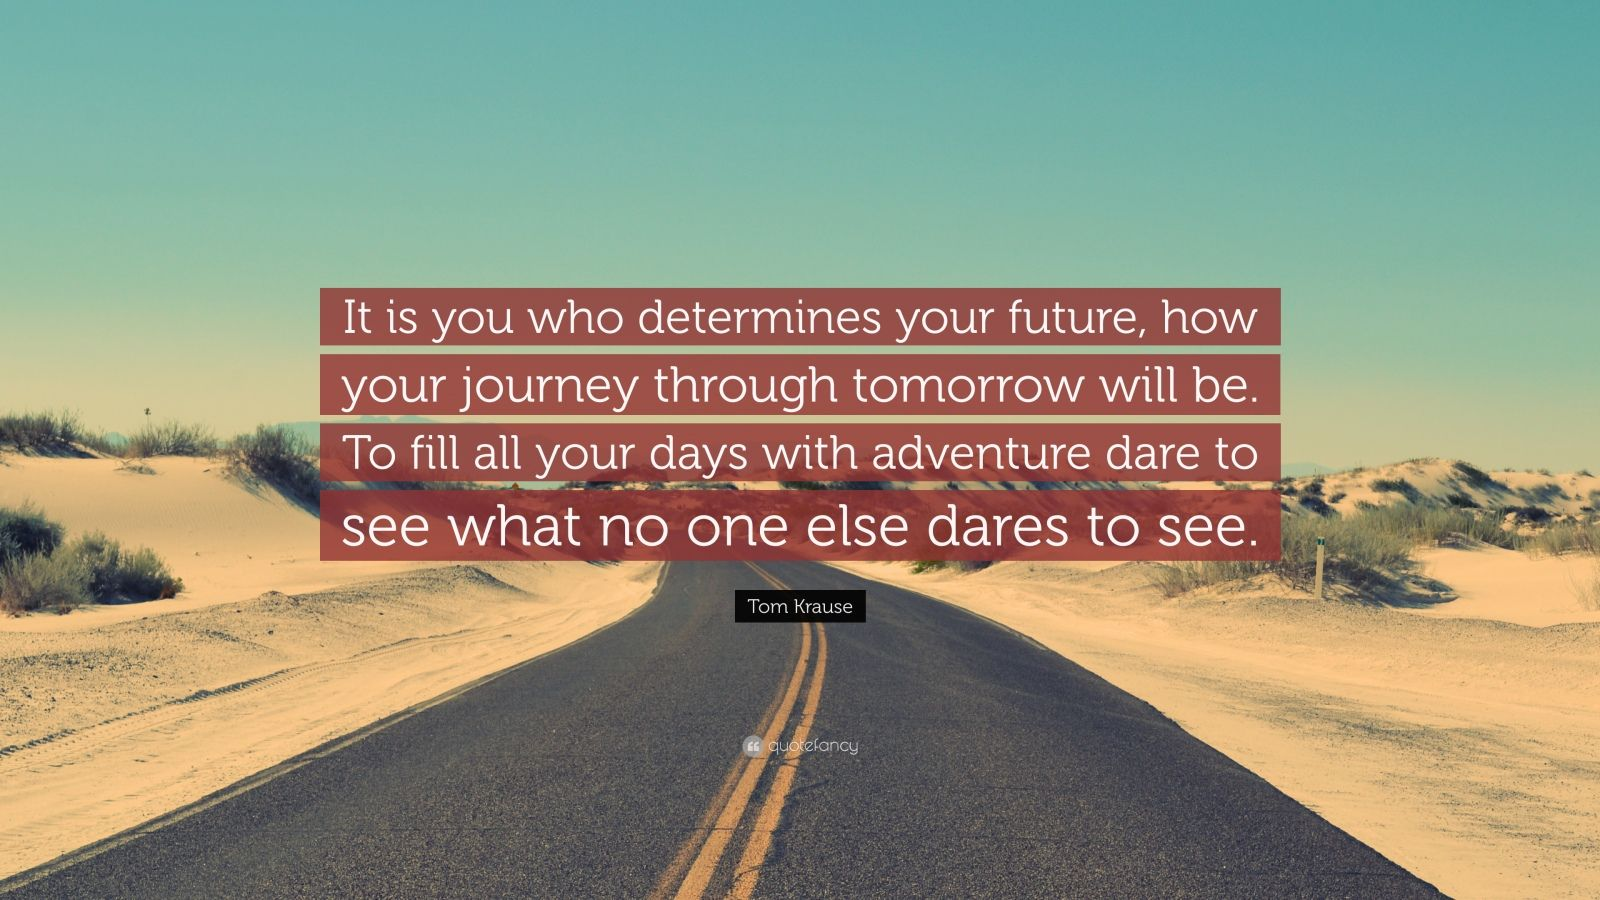 """Tom Krause Quote: """"It is you who determines your future, how your journey through tomorrow will be. To fill all your days with adventure dare to see what no one else dares to see."""""""